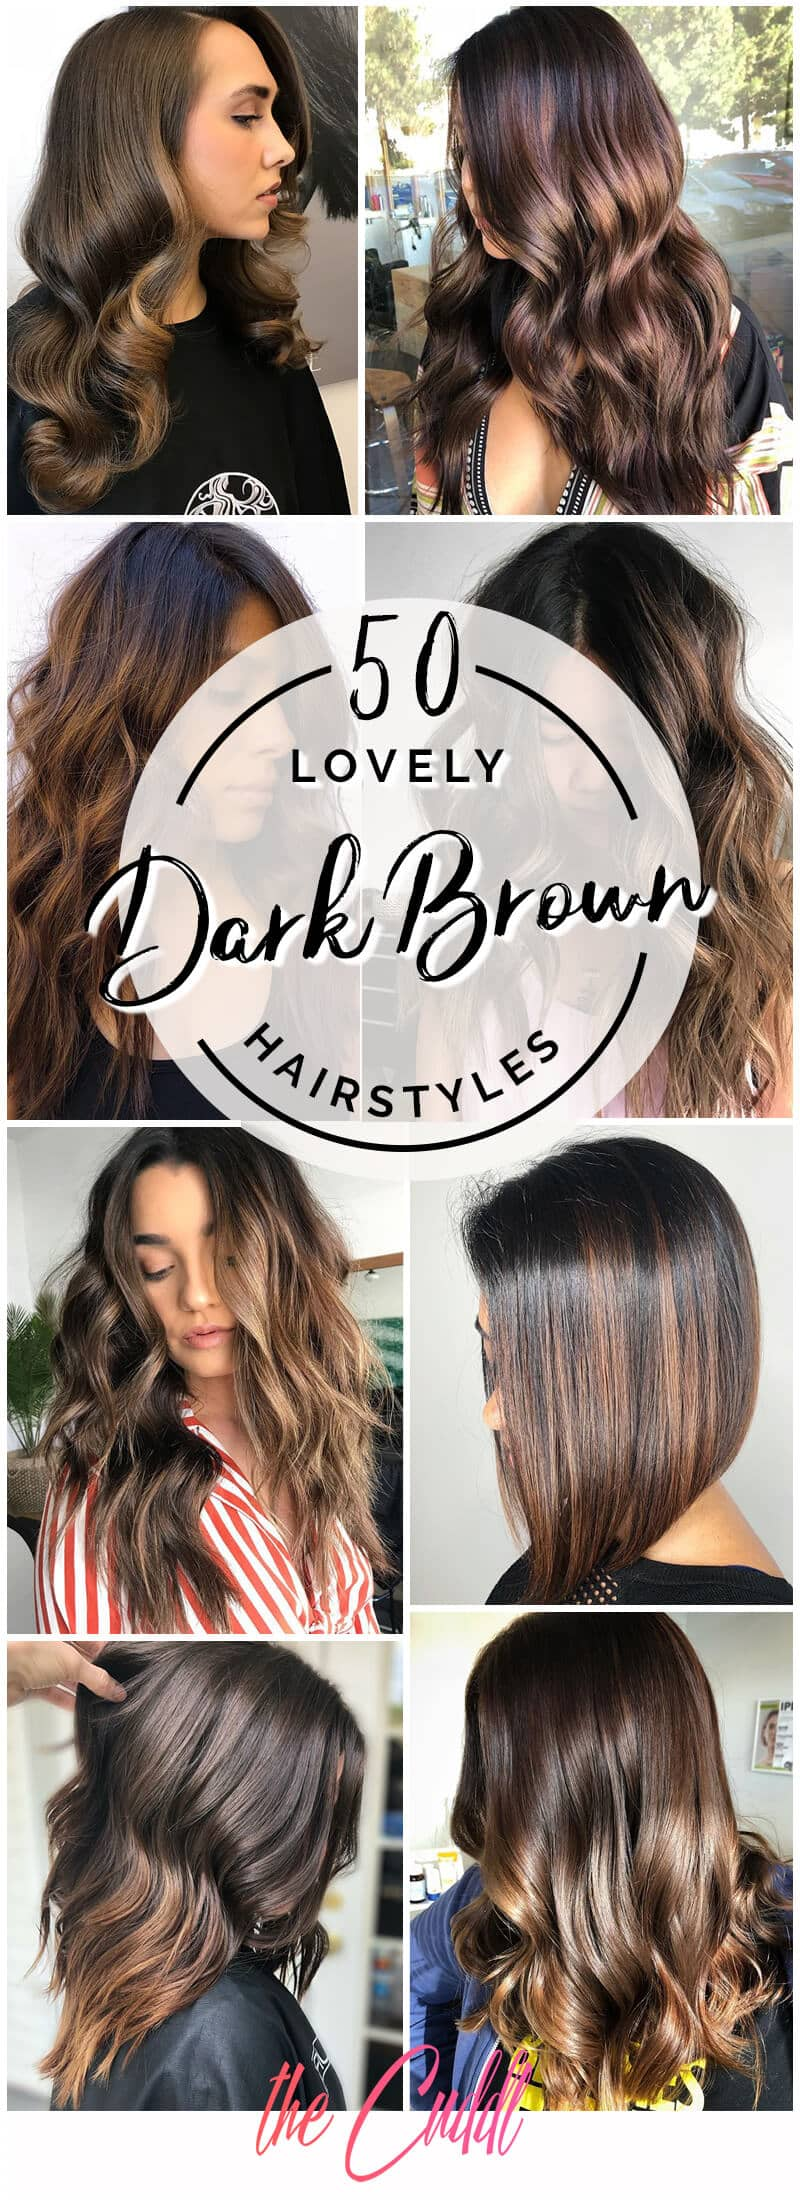 50 Fun Dark Brown Hair Ideas To Shake Things Up In 2021